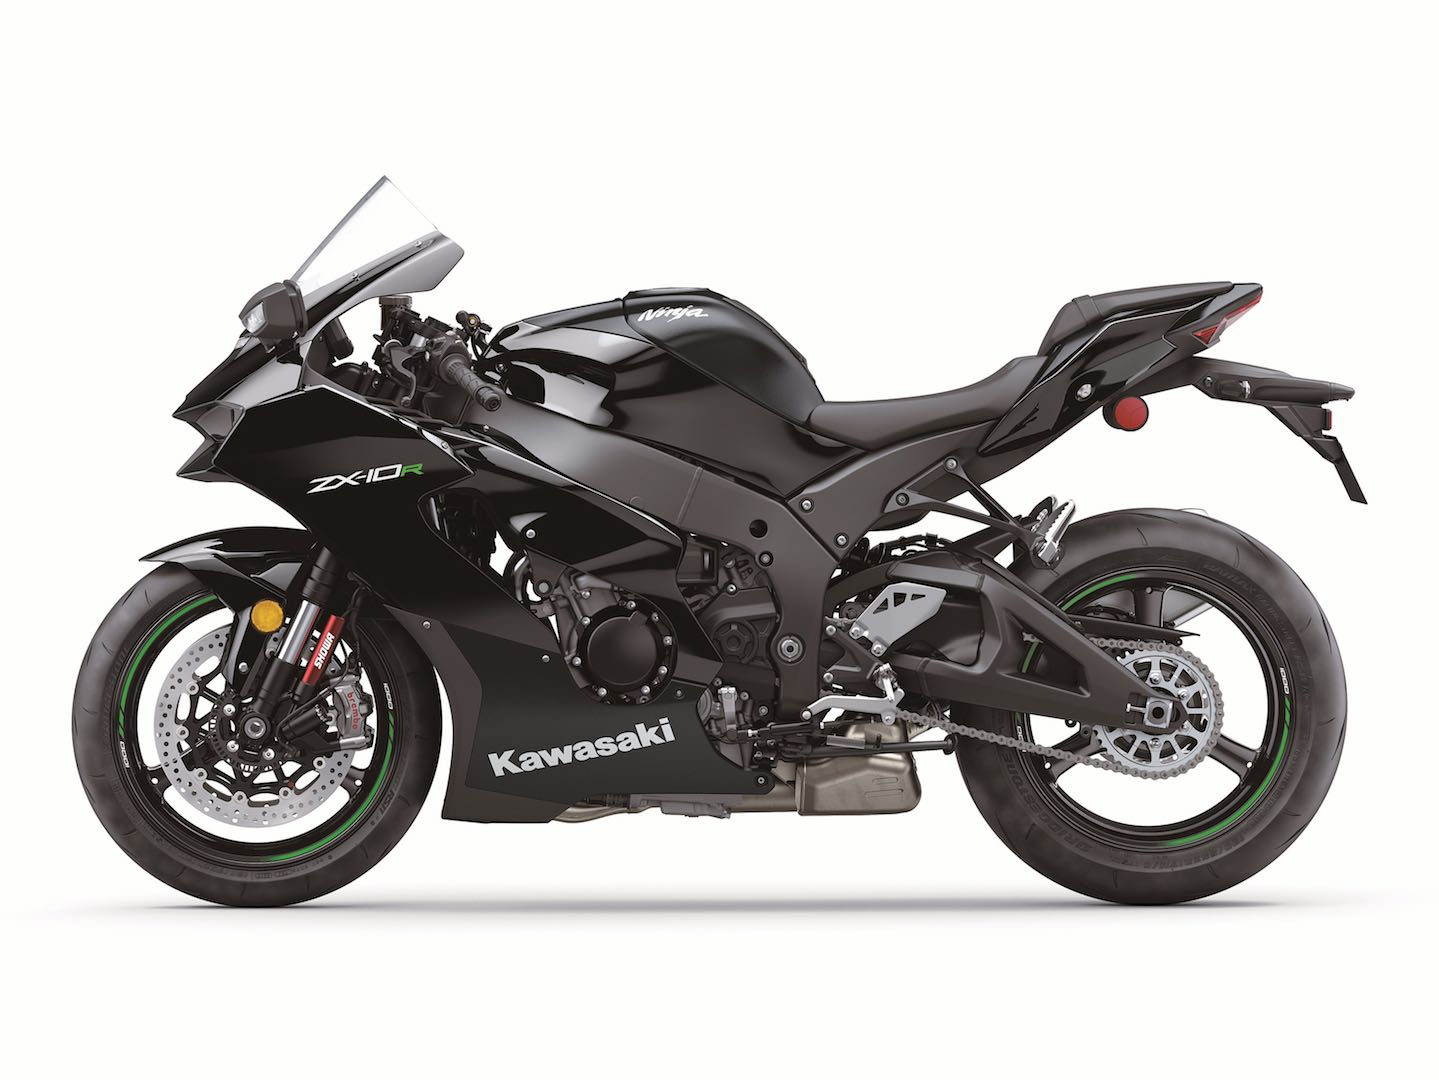 2021 KAWASAKI NINJA ZX-10R AND ZX-10RR: ALL-NEW (15 FAST FACTS)